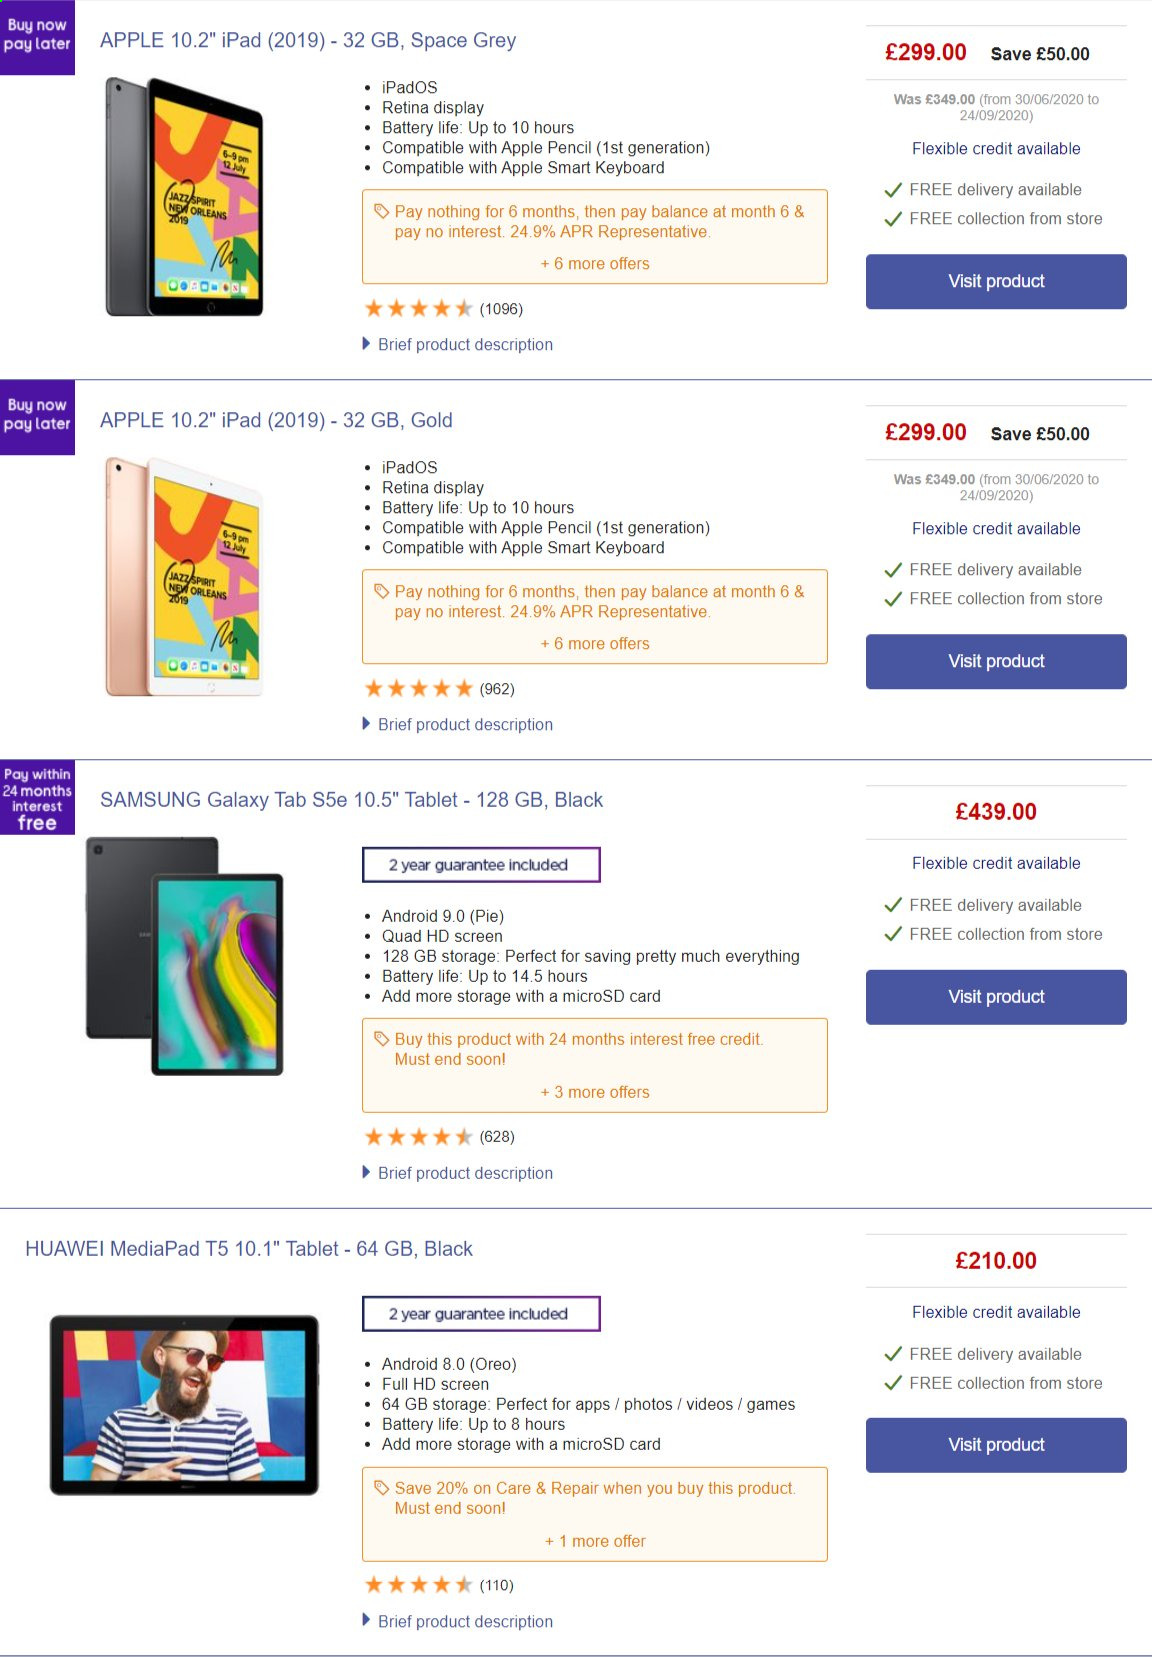 Currys PC World offer  - 26.9.2020 - 2.10.2020 - Sales products - android, apple, battery, full hd, galaxy, repair, samsung, storage, tablet, huawei, keyboard, oreo, game, pie, ipad, card, apples, samsung galaxy. Page 1.